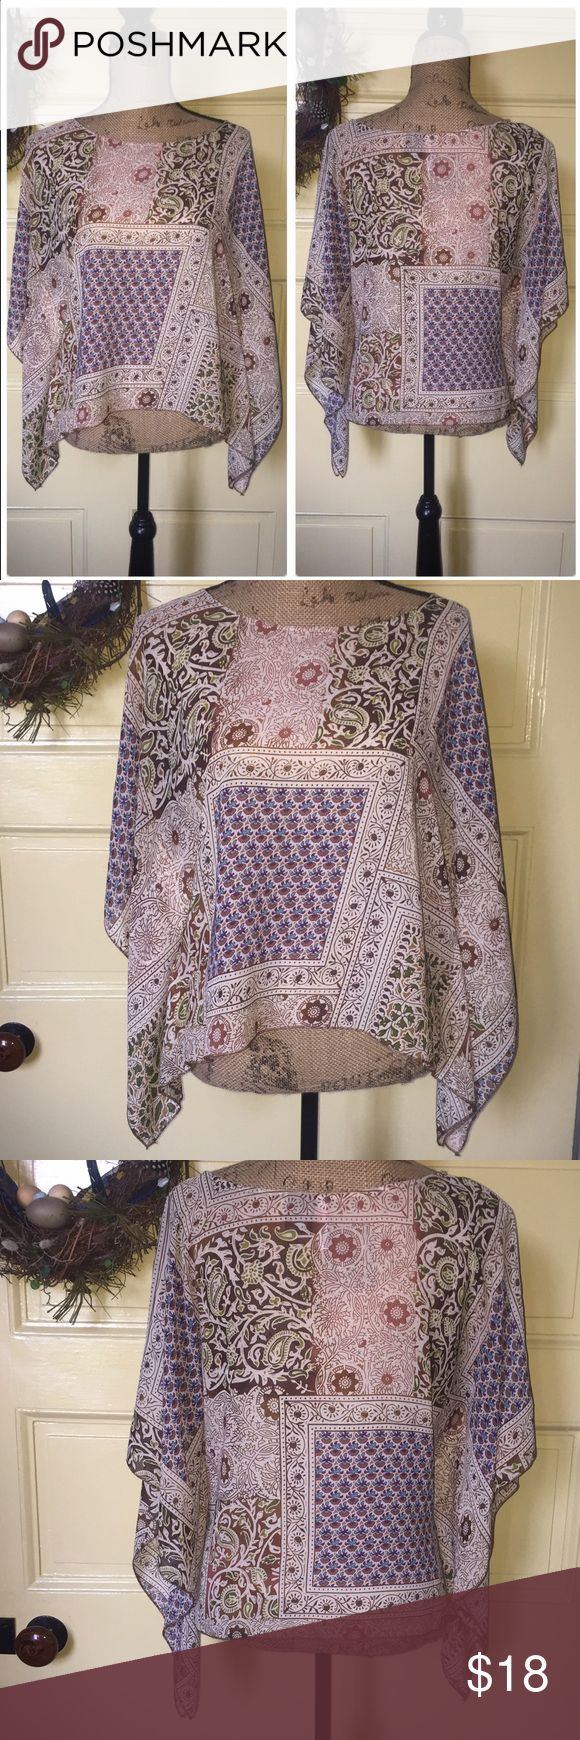 """Fire semi-sheer boho, batwing lightweight top. M Fire semi-sheer boho, batwing lightweight top. Size M. Great boho colors: browns, greens, blues, purple all on cream background. A tank is perfect under this for cool, breezy summer wear.  Lightly worn- looks like new. 100% polyester. Chest (armpit seam to seam) 21"""", Length (shoulder to hem) 22"""" Fire Los Angeles Tops Blouses"""